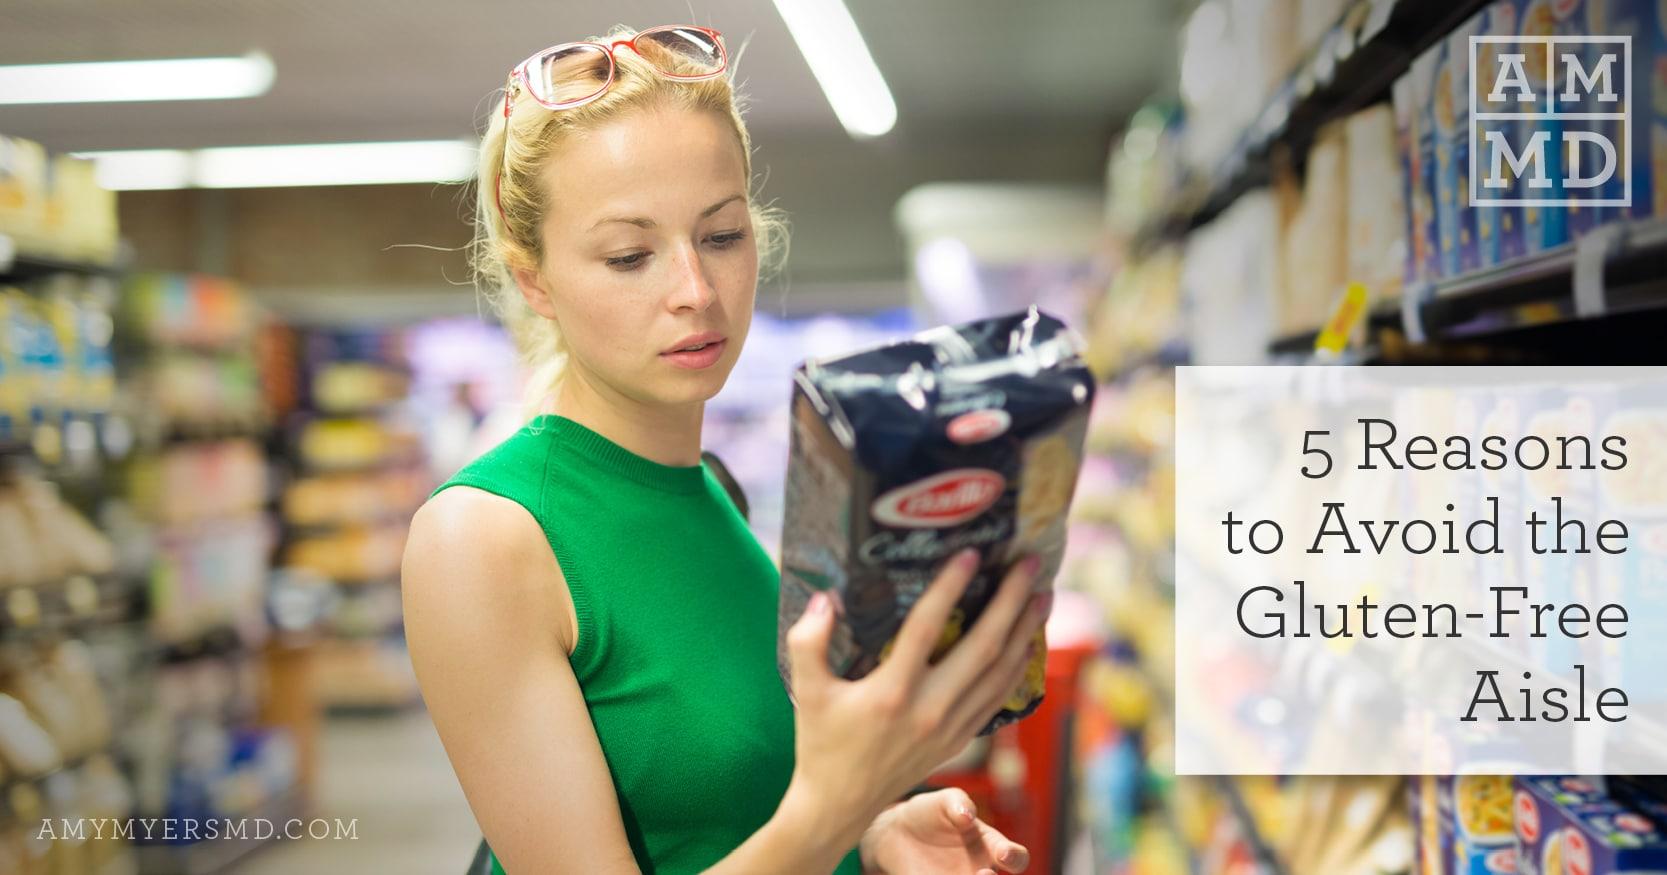 Reasons to Avoid the Gluten-Free Aisle - A Woman Shopping for Groceries Reads a Label - Featured Image - Amy Myers MD